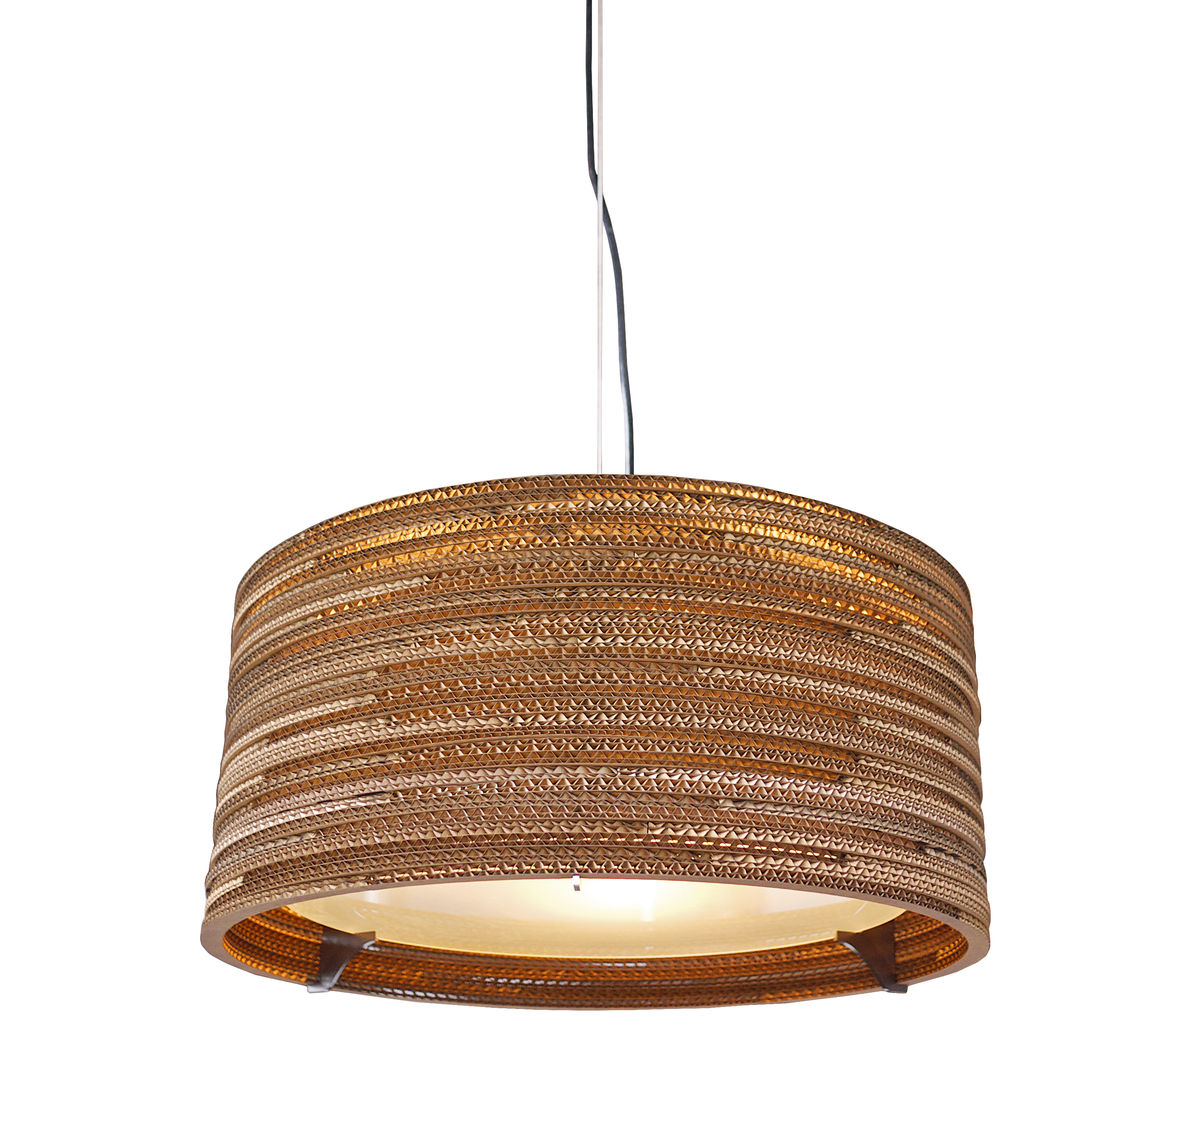 Recycled Cardboard Drum Pendant Light - product images  of